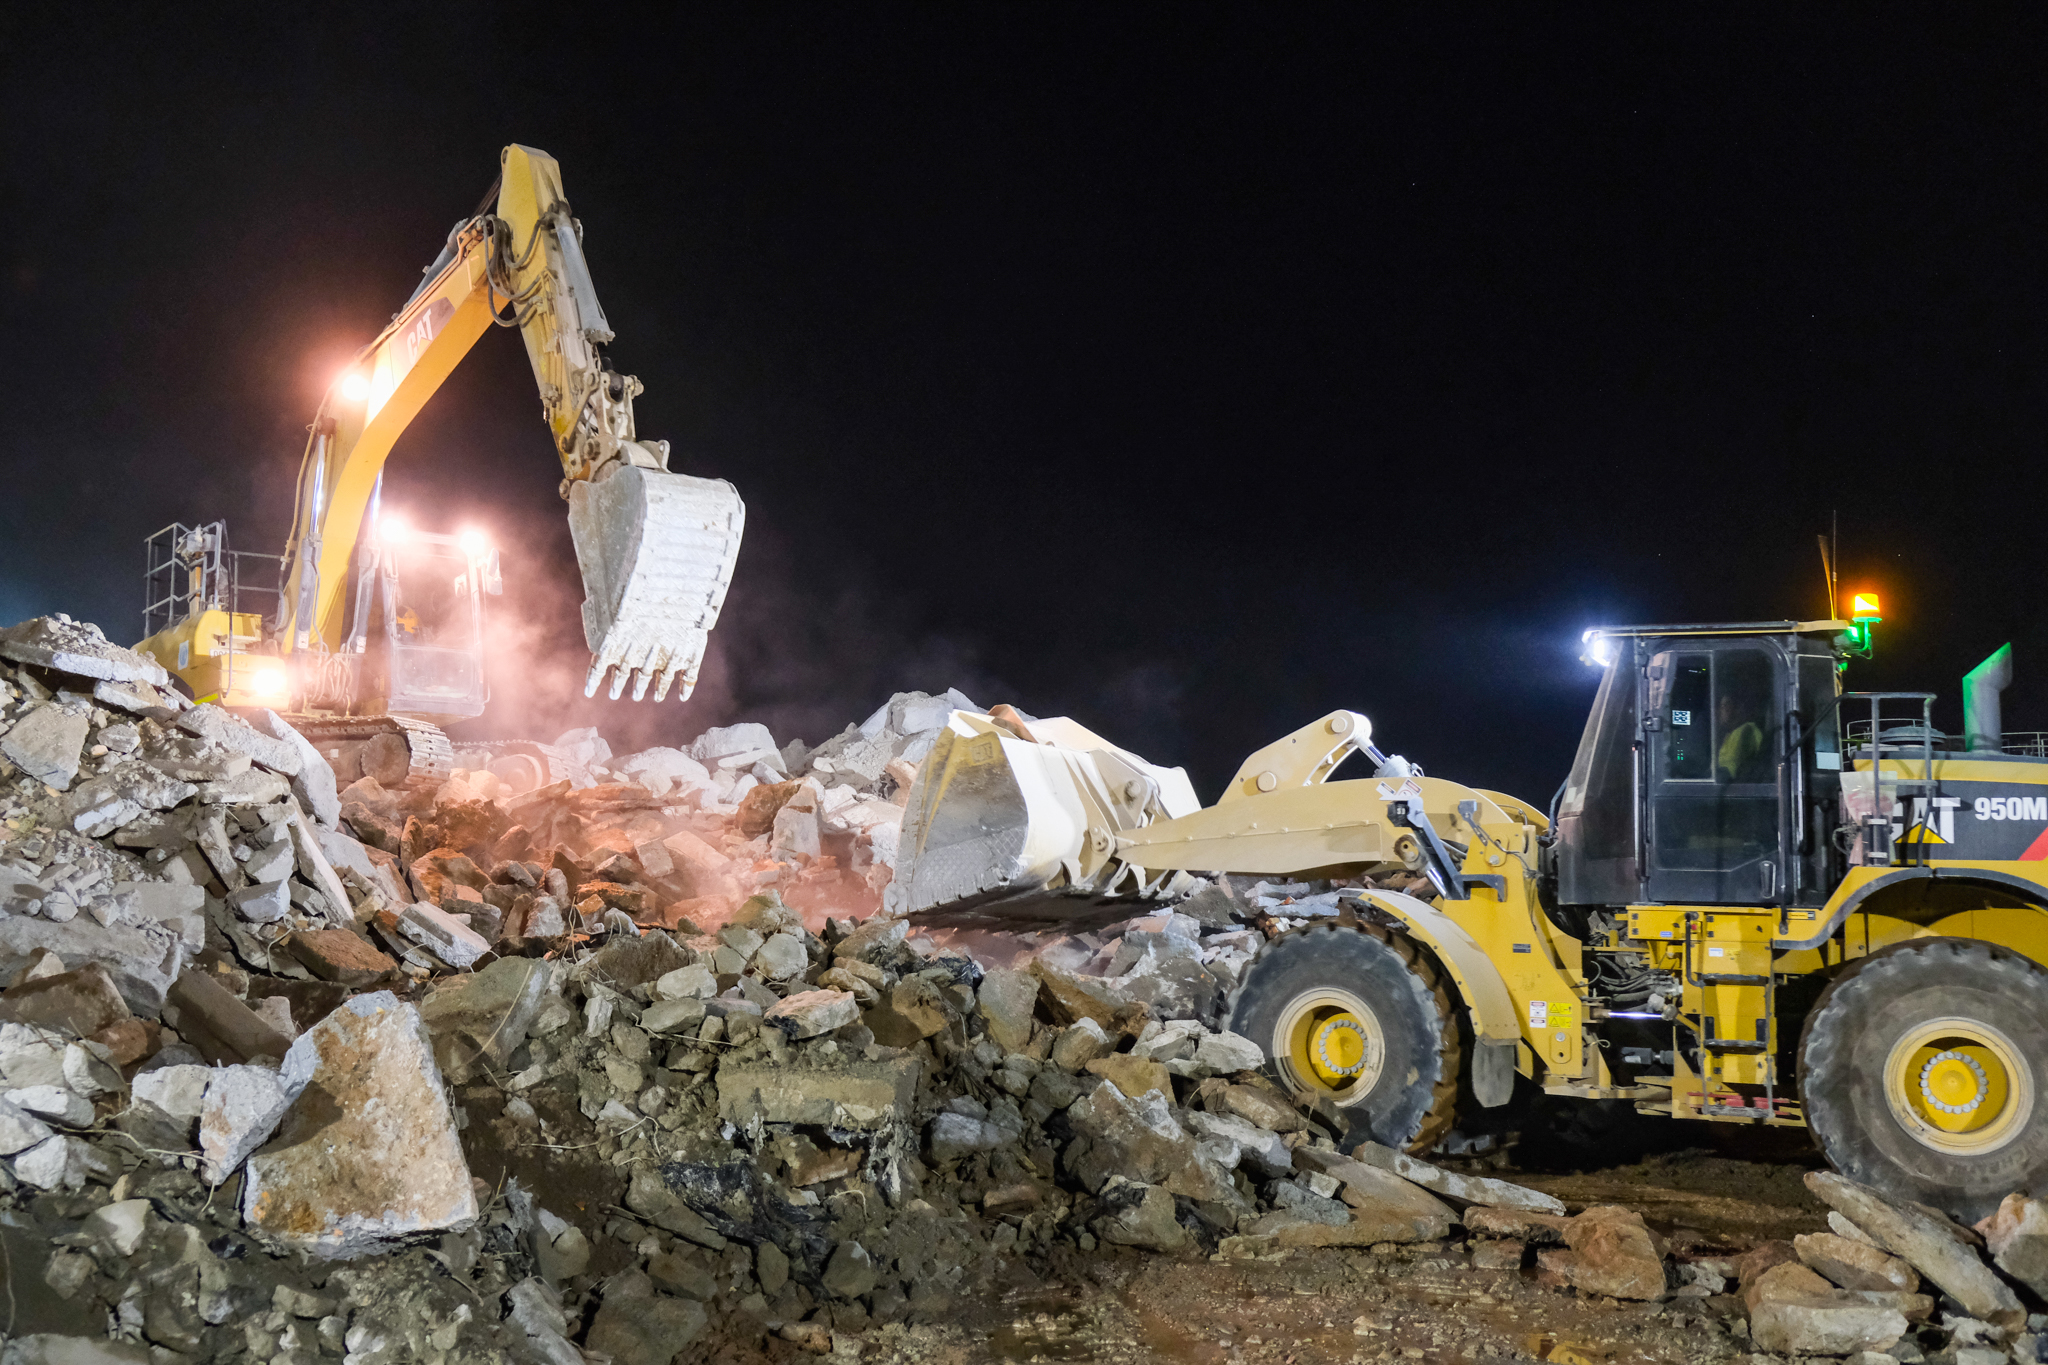 Digger and front wheel loader shown working at night to move concrete waste, ready for recycling.